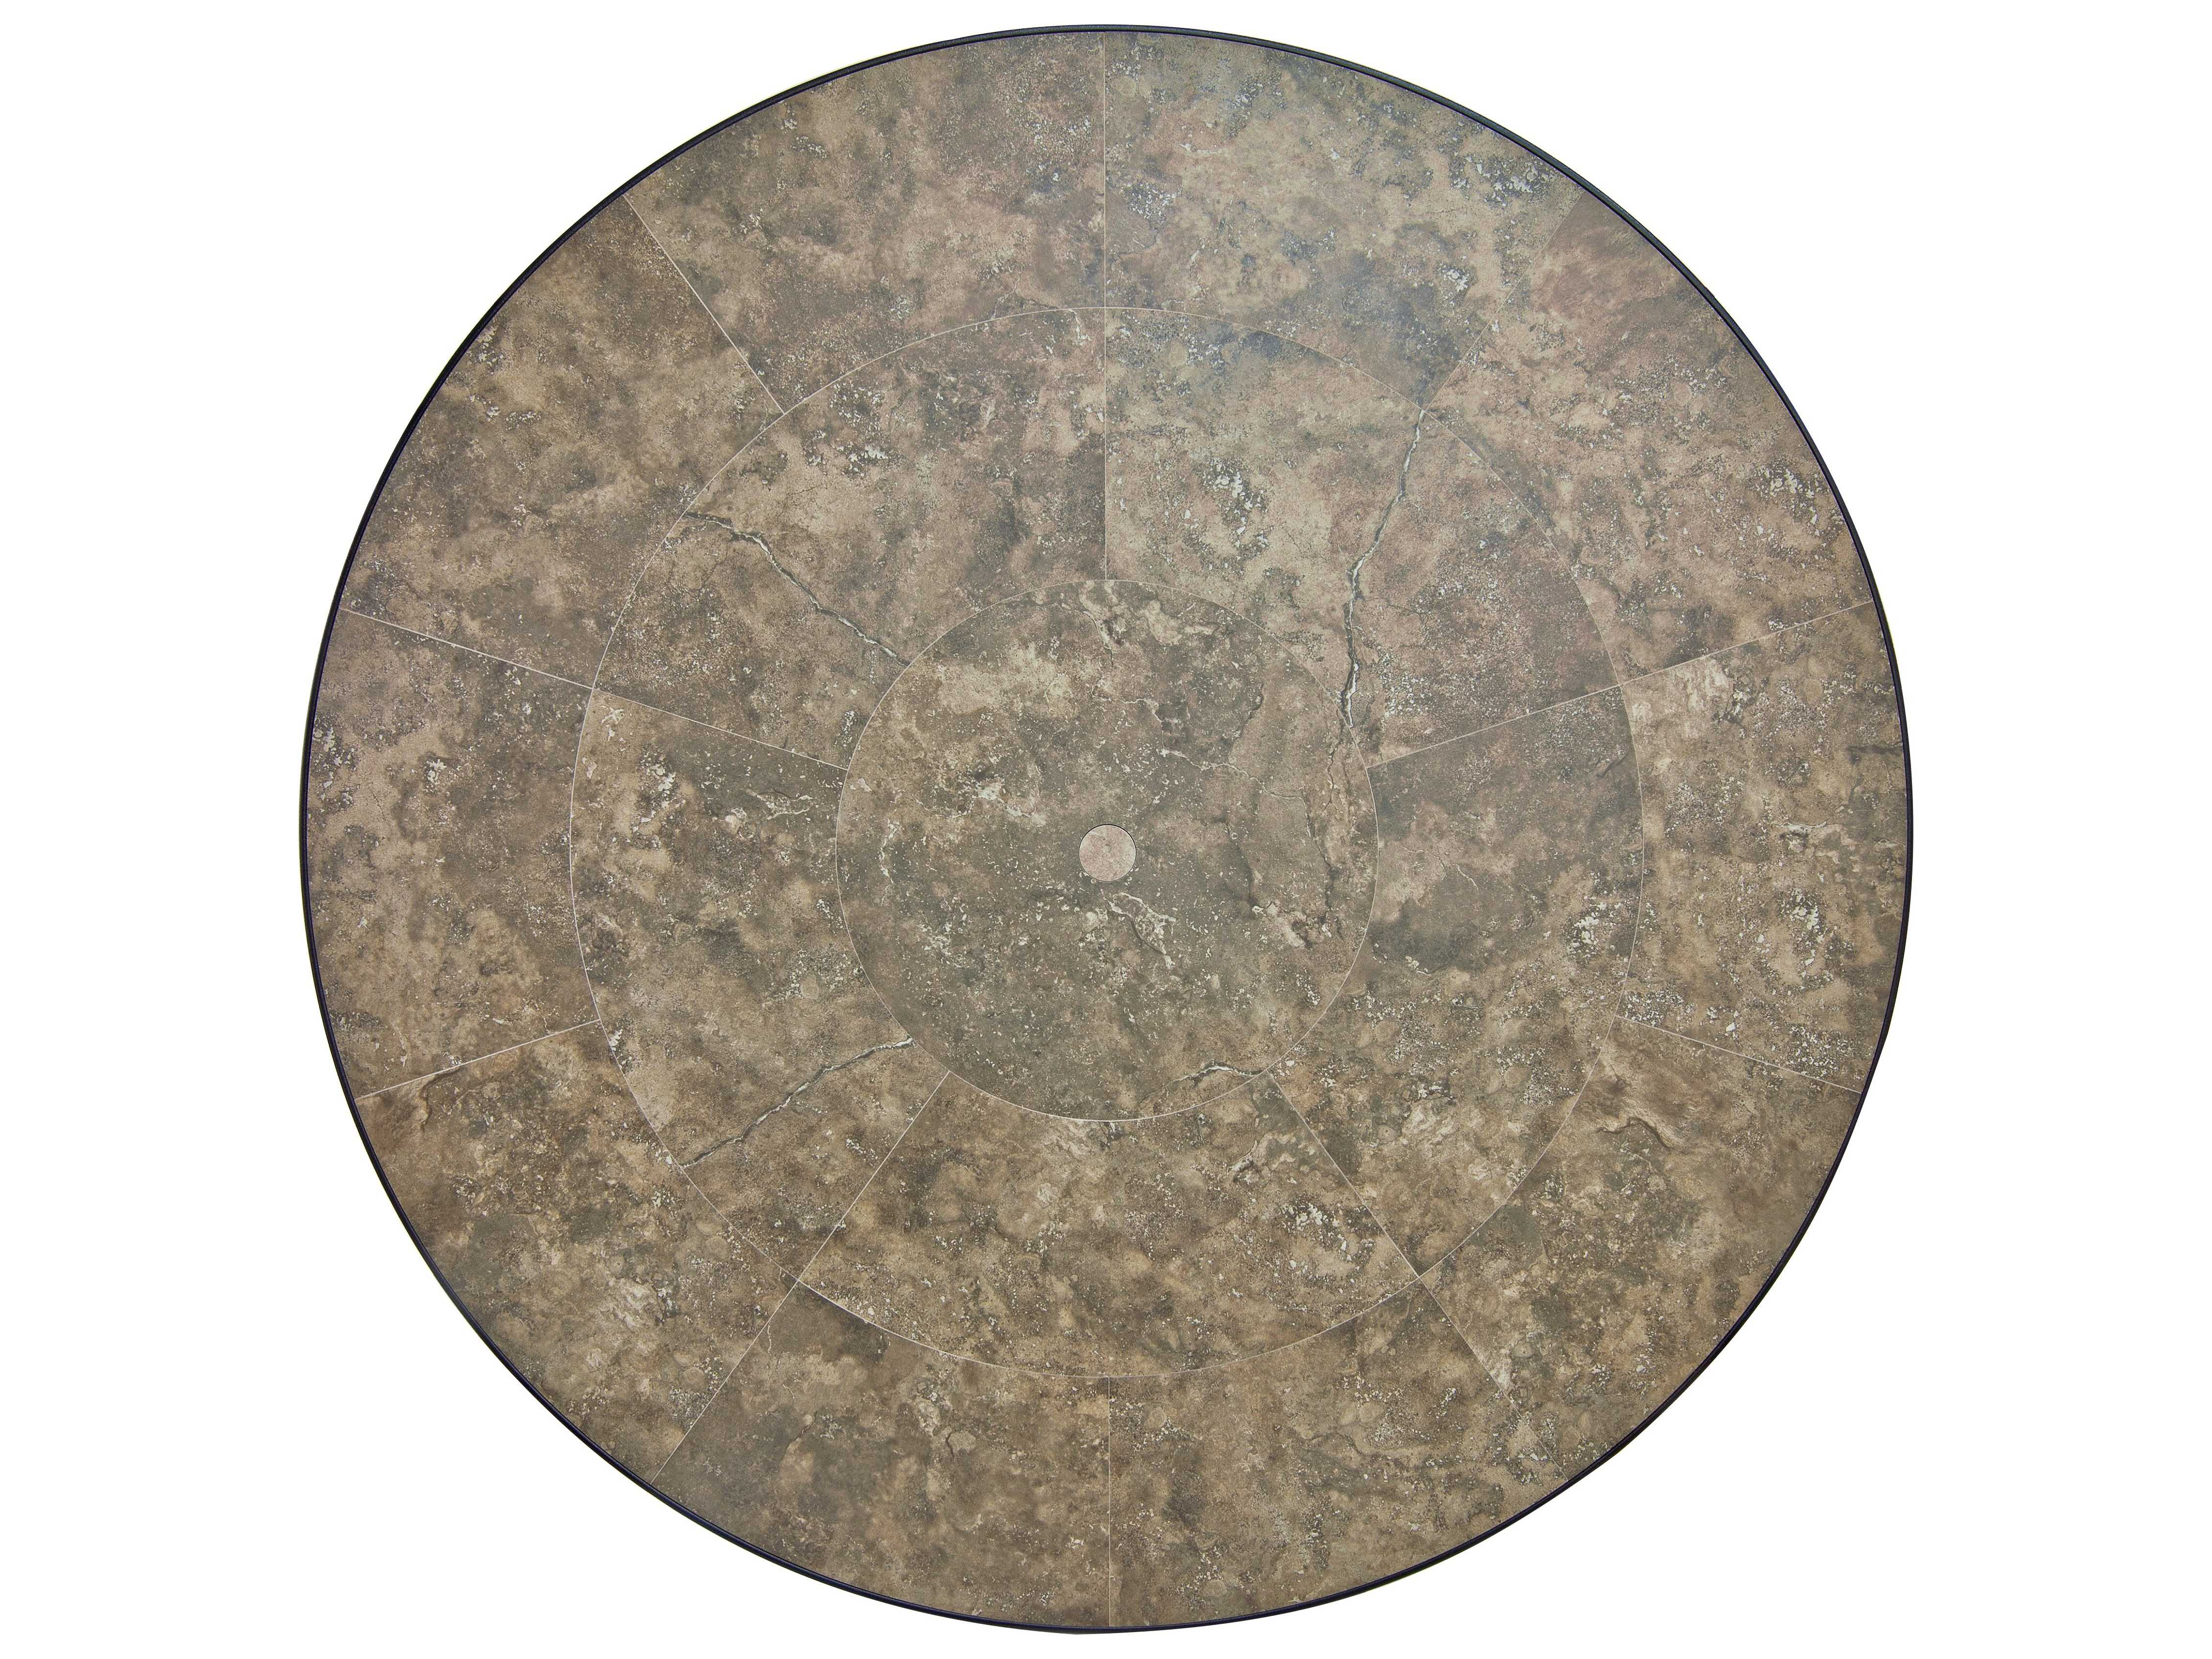 Ow Lee Porcelain Tile 54 Round Table Top With Umbrella